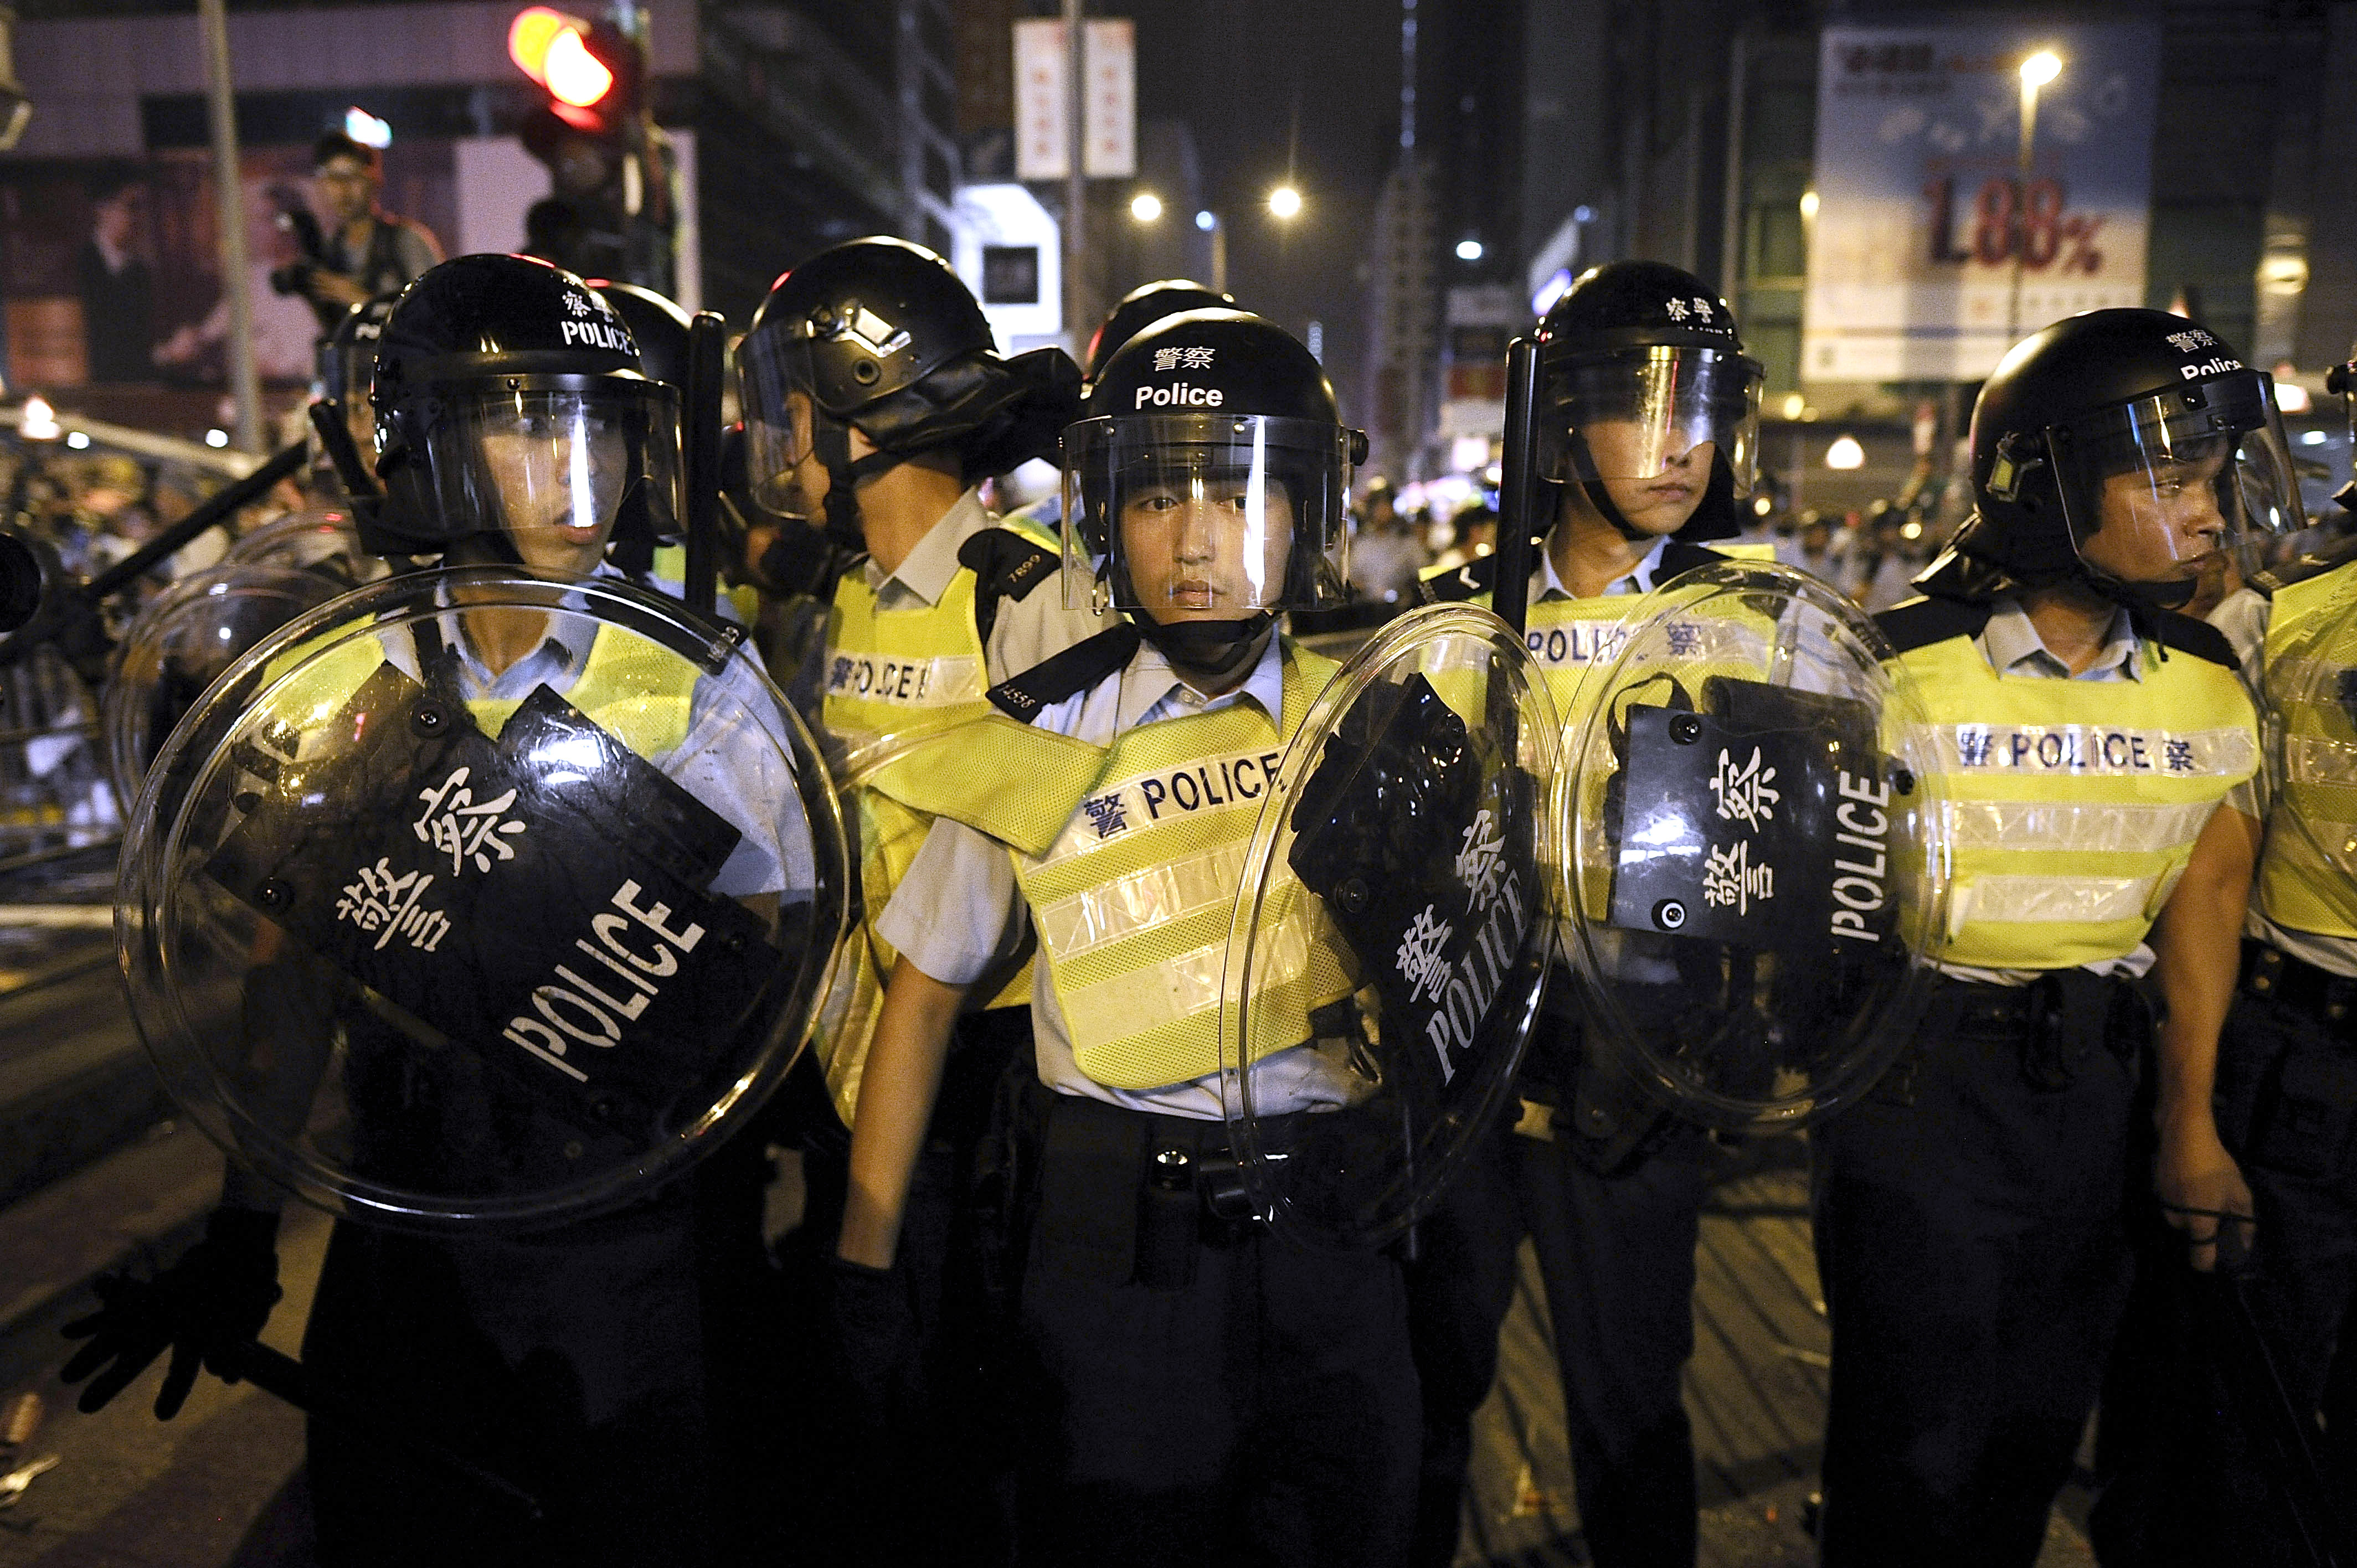 Riot police forces clash with pro-democracy protesters shortly after midnight at Mong Kok on October 19, 2014 in Hong Kong.